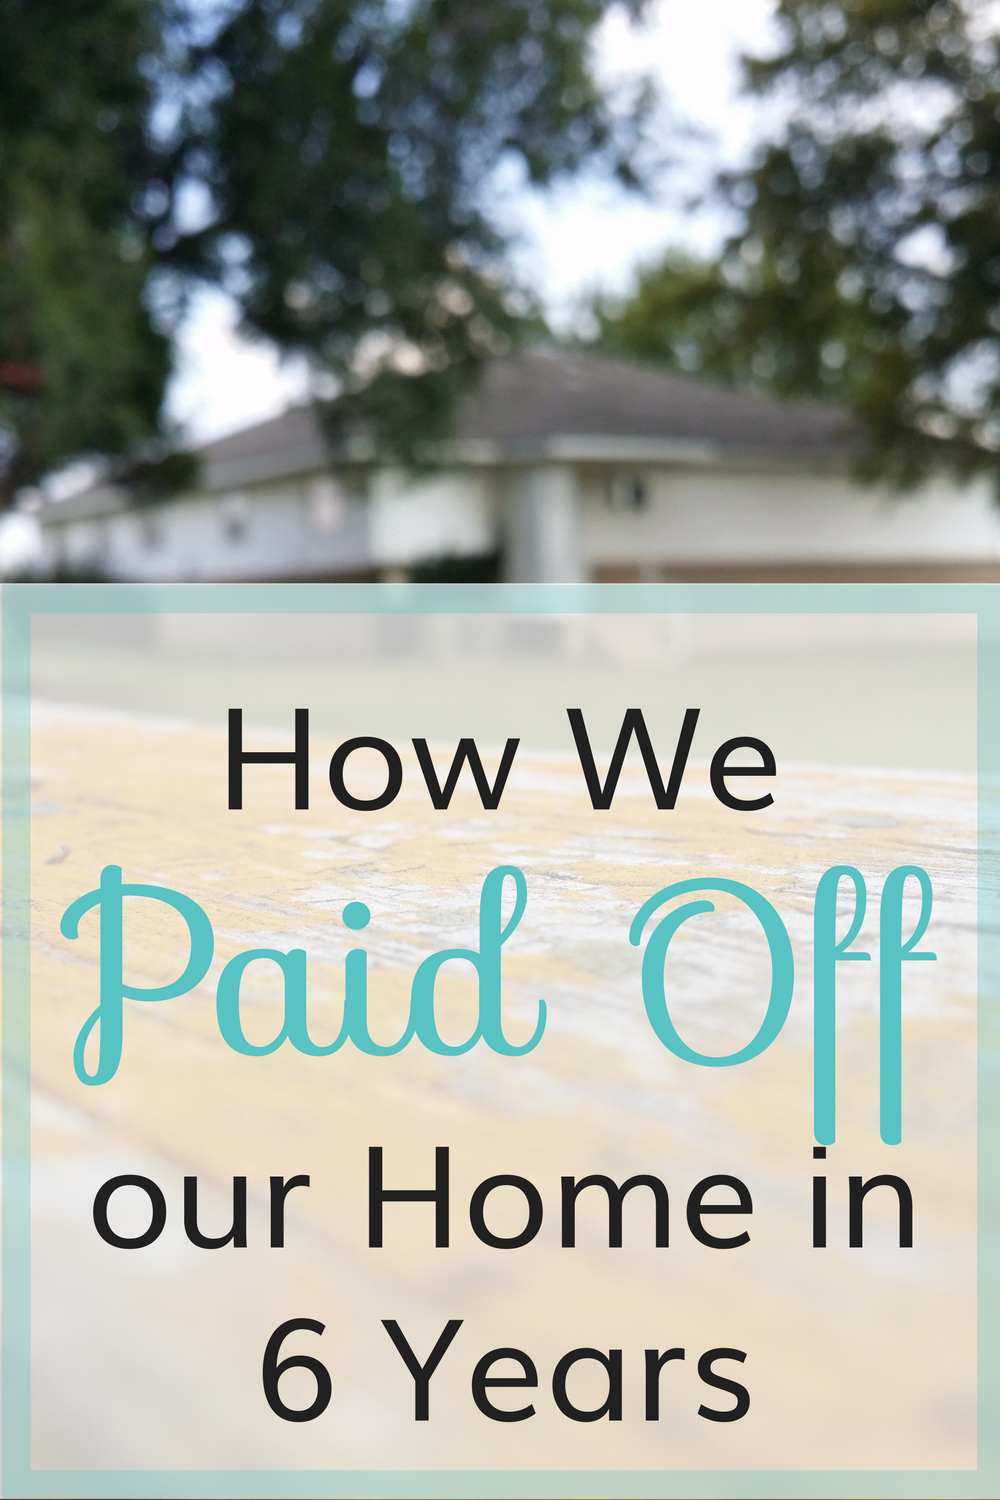 How We Paid Off Our Home in 6 Years